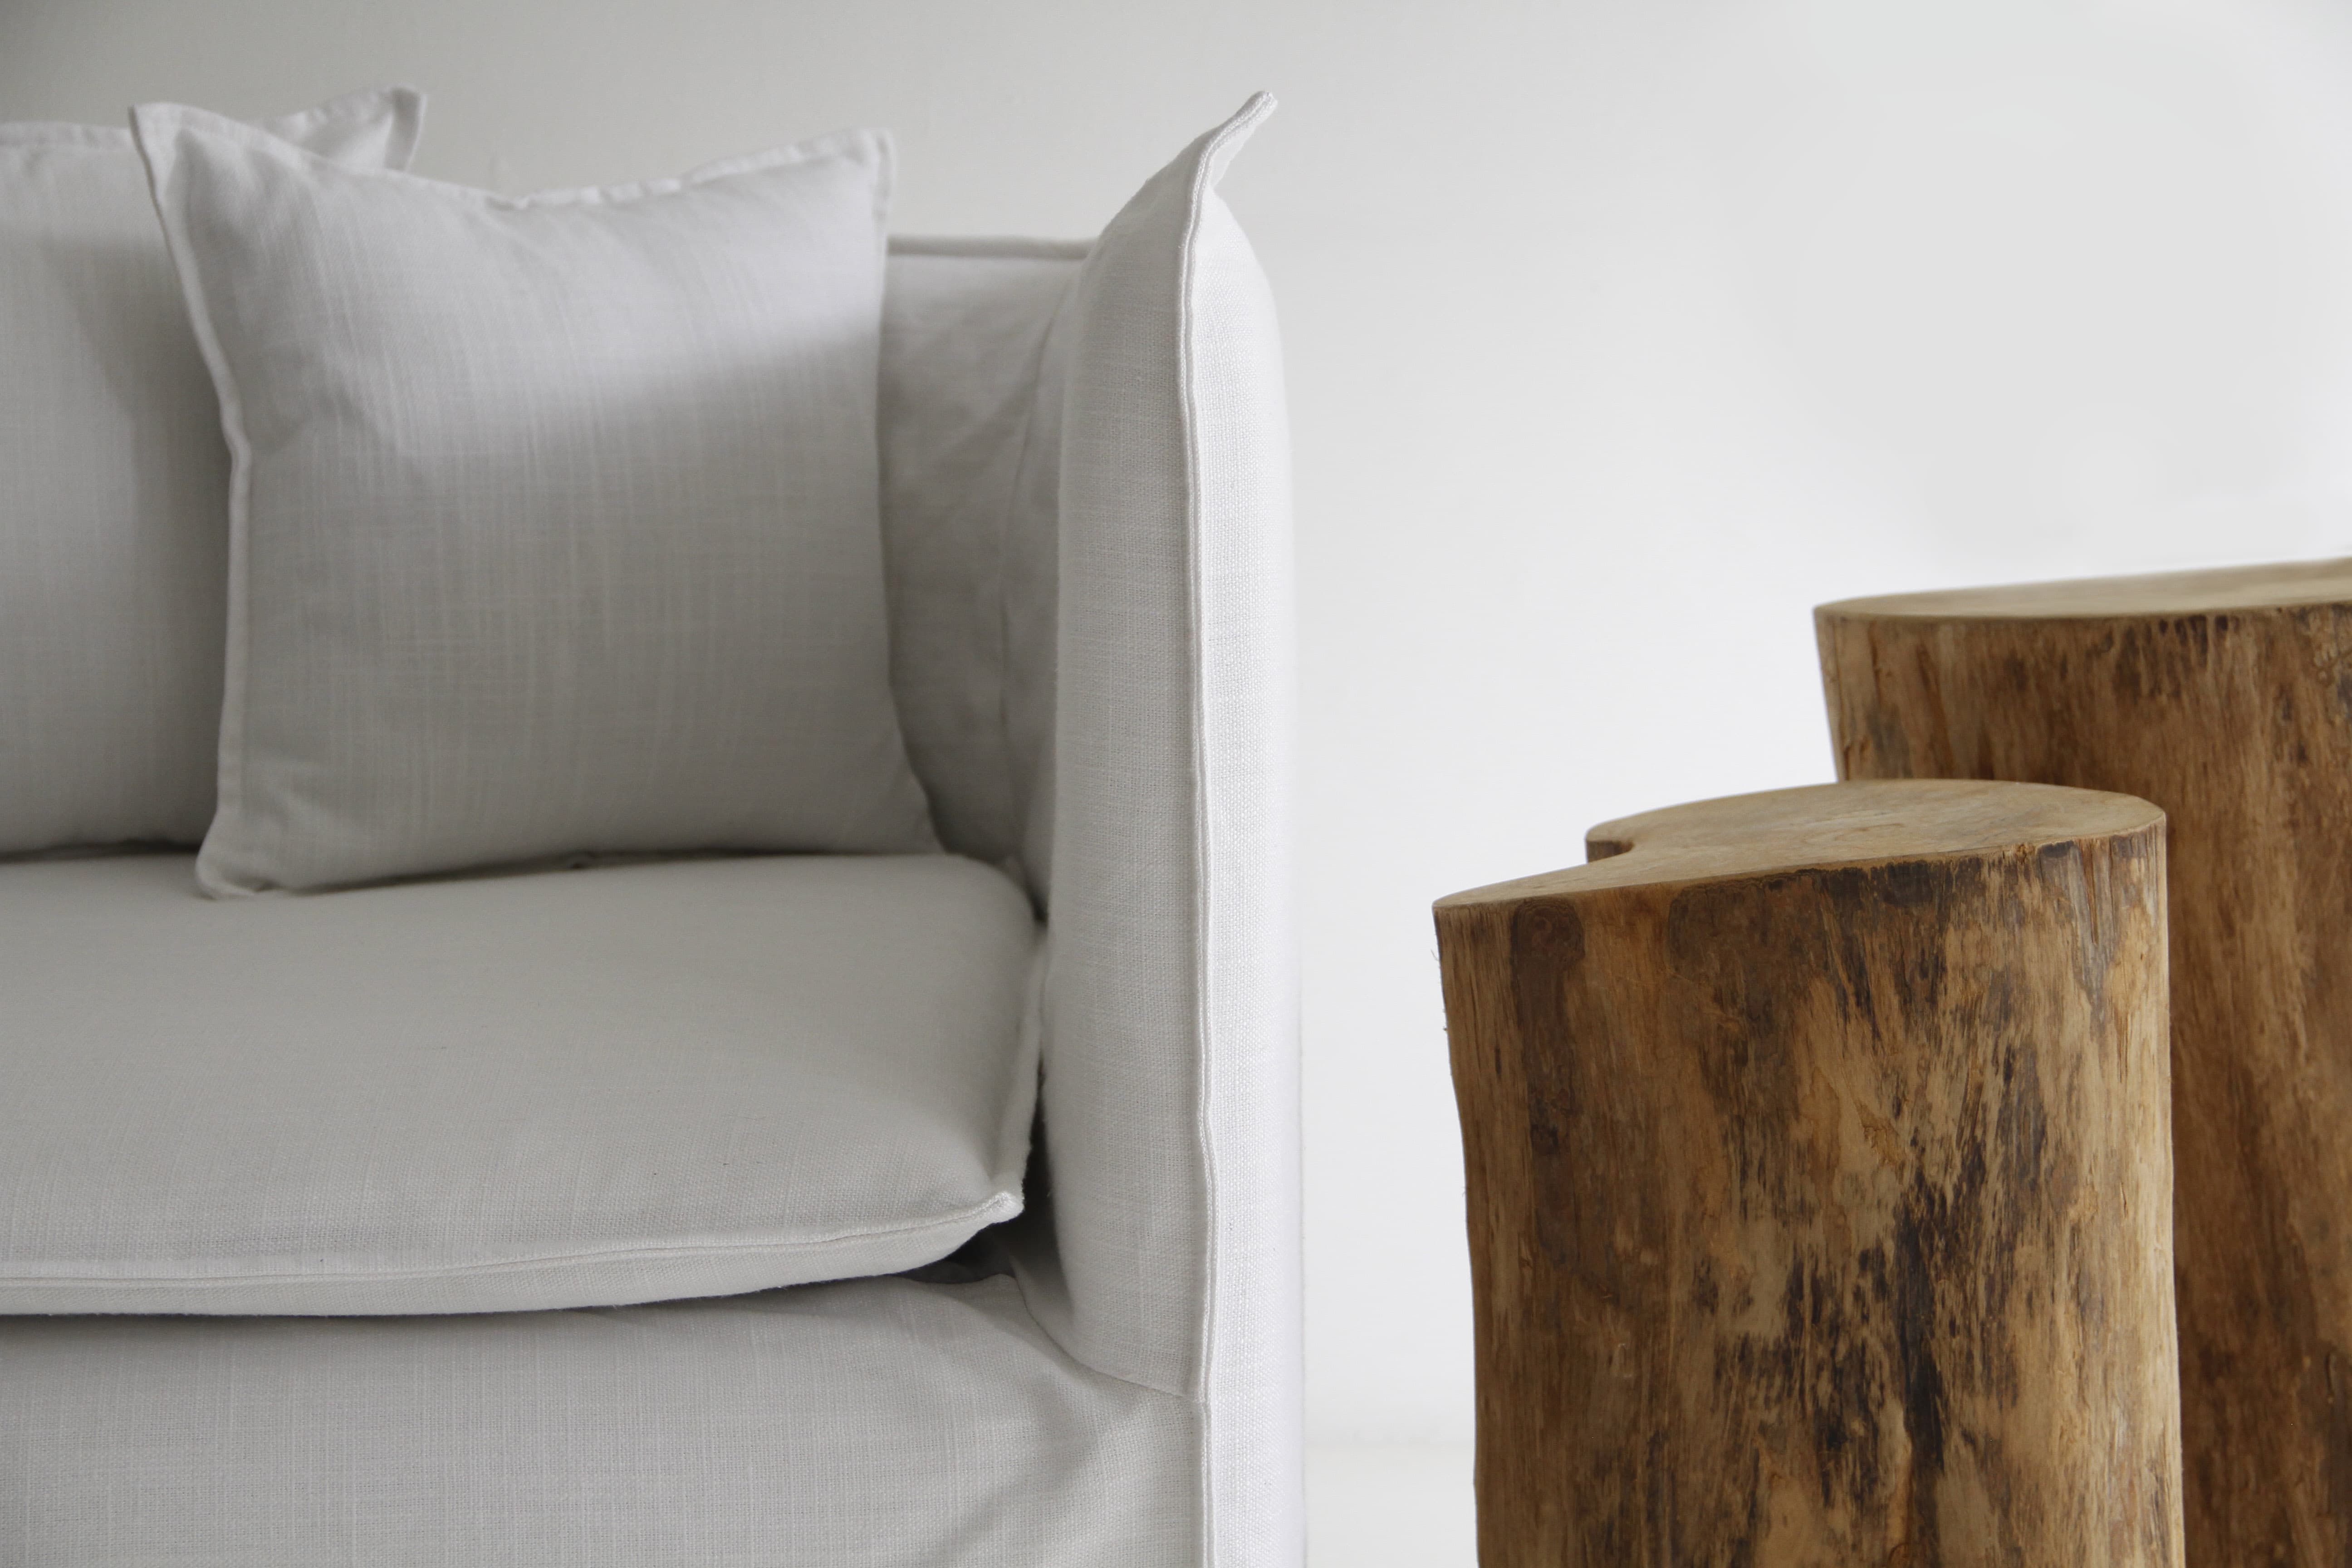 soderhamn ghost sofa covers front profile